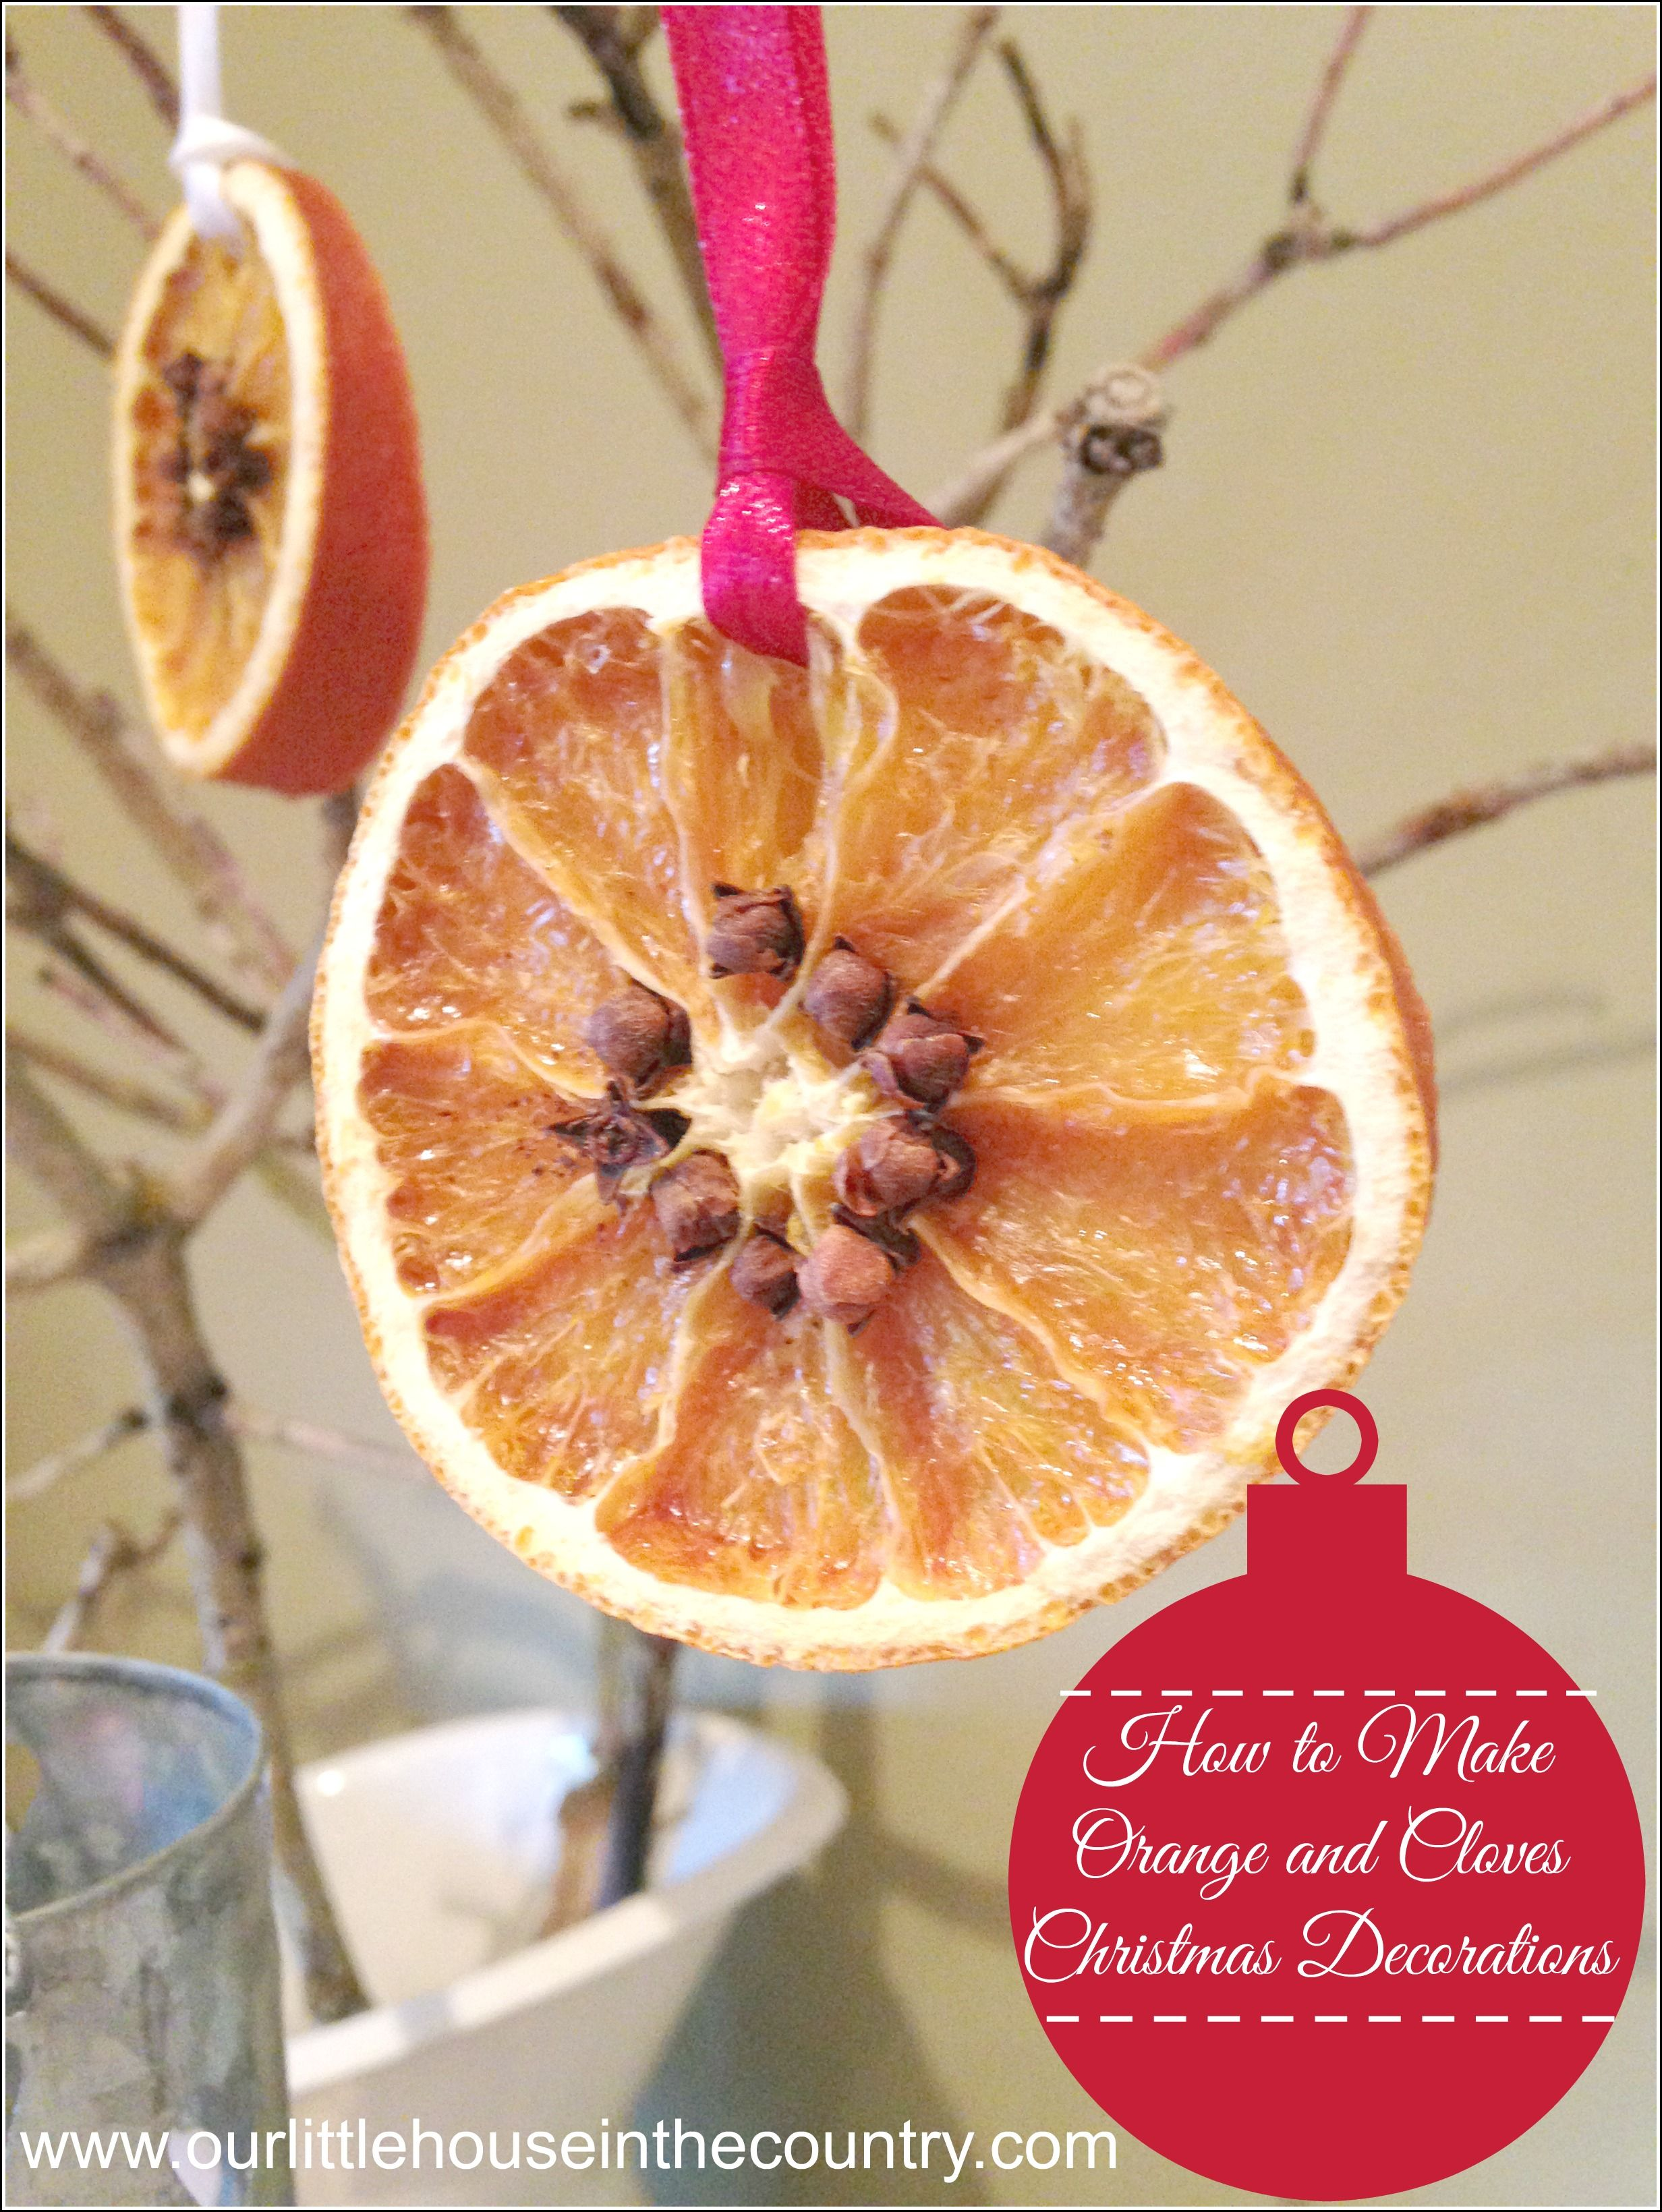 Best 25+ Christmas Oranges Ideas On Pinterest  Yule Decorations, Diy Xmas  Decorations And Dried Orange Slices